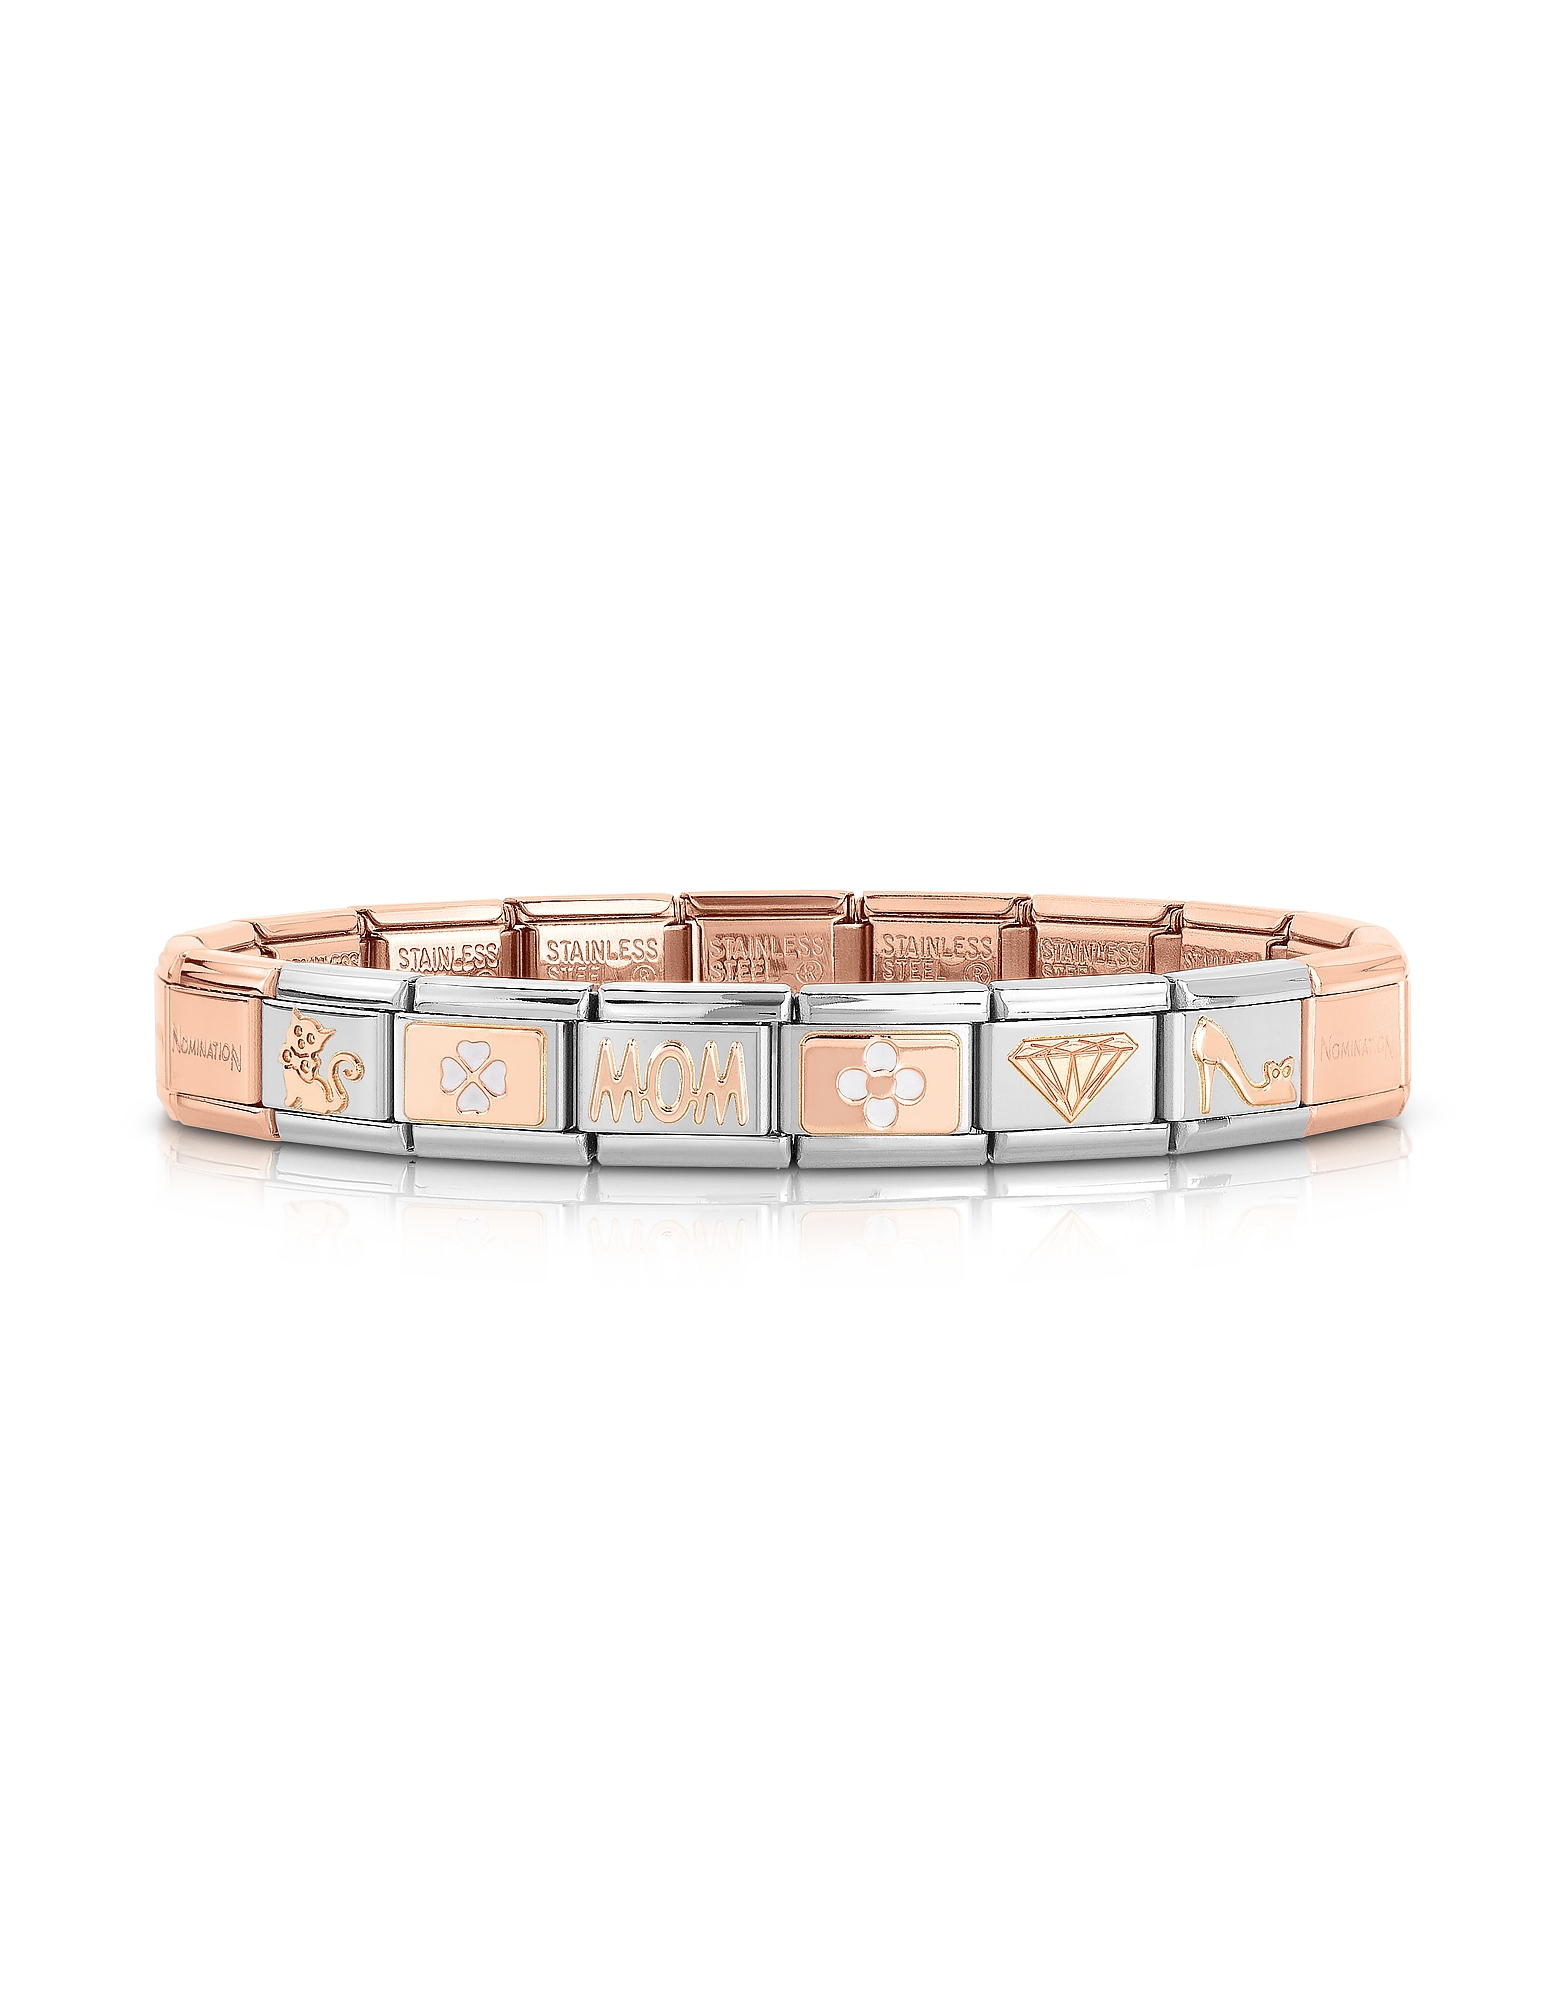 Nomination Bracelets, Classic Mom Rose Gold and Stainless Steel Bracelet